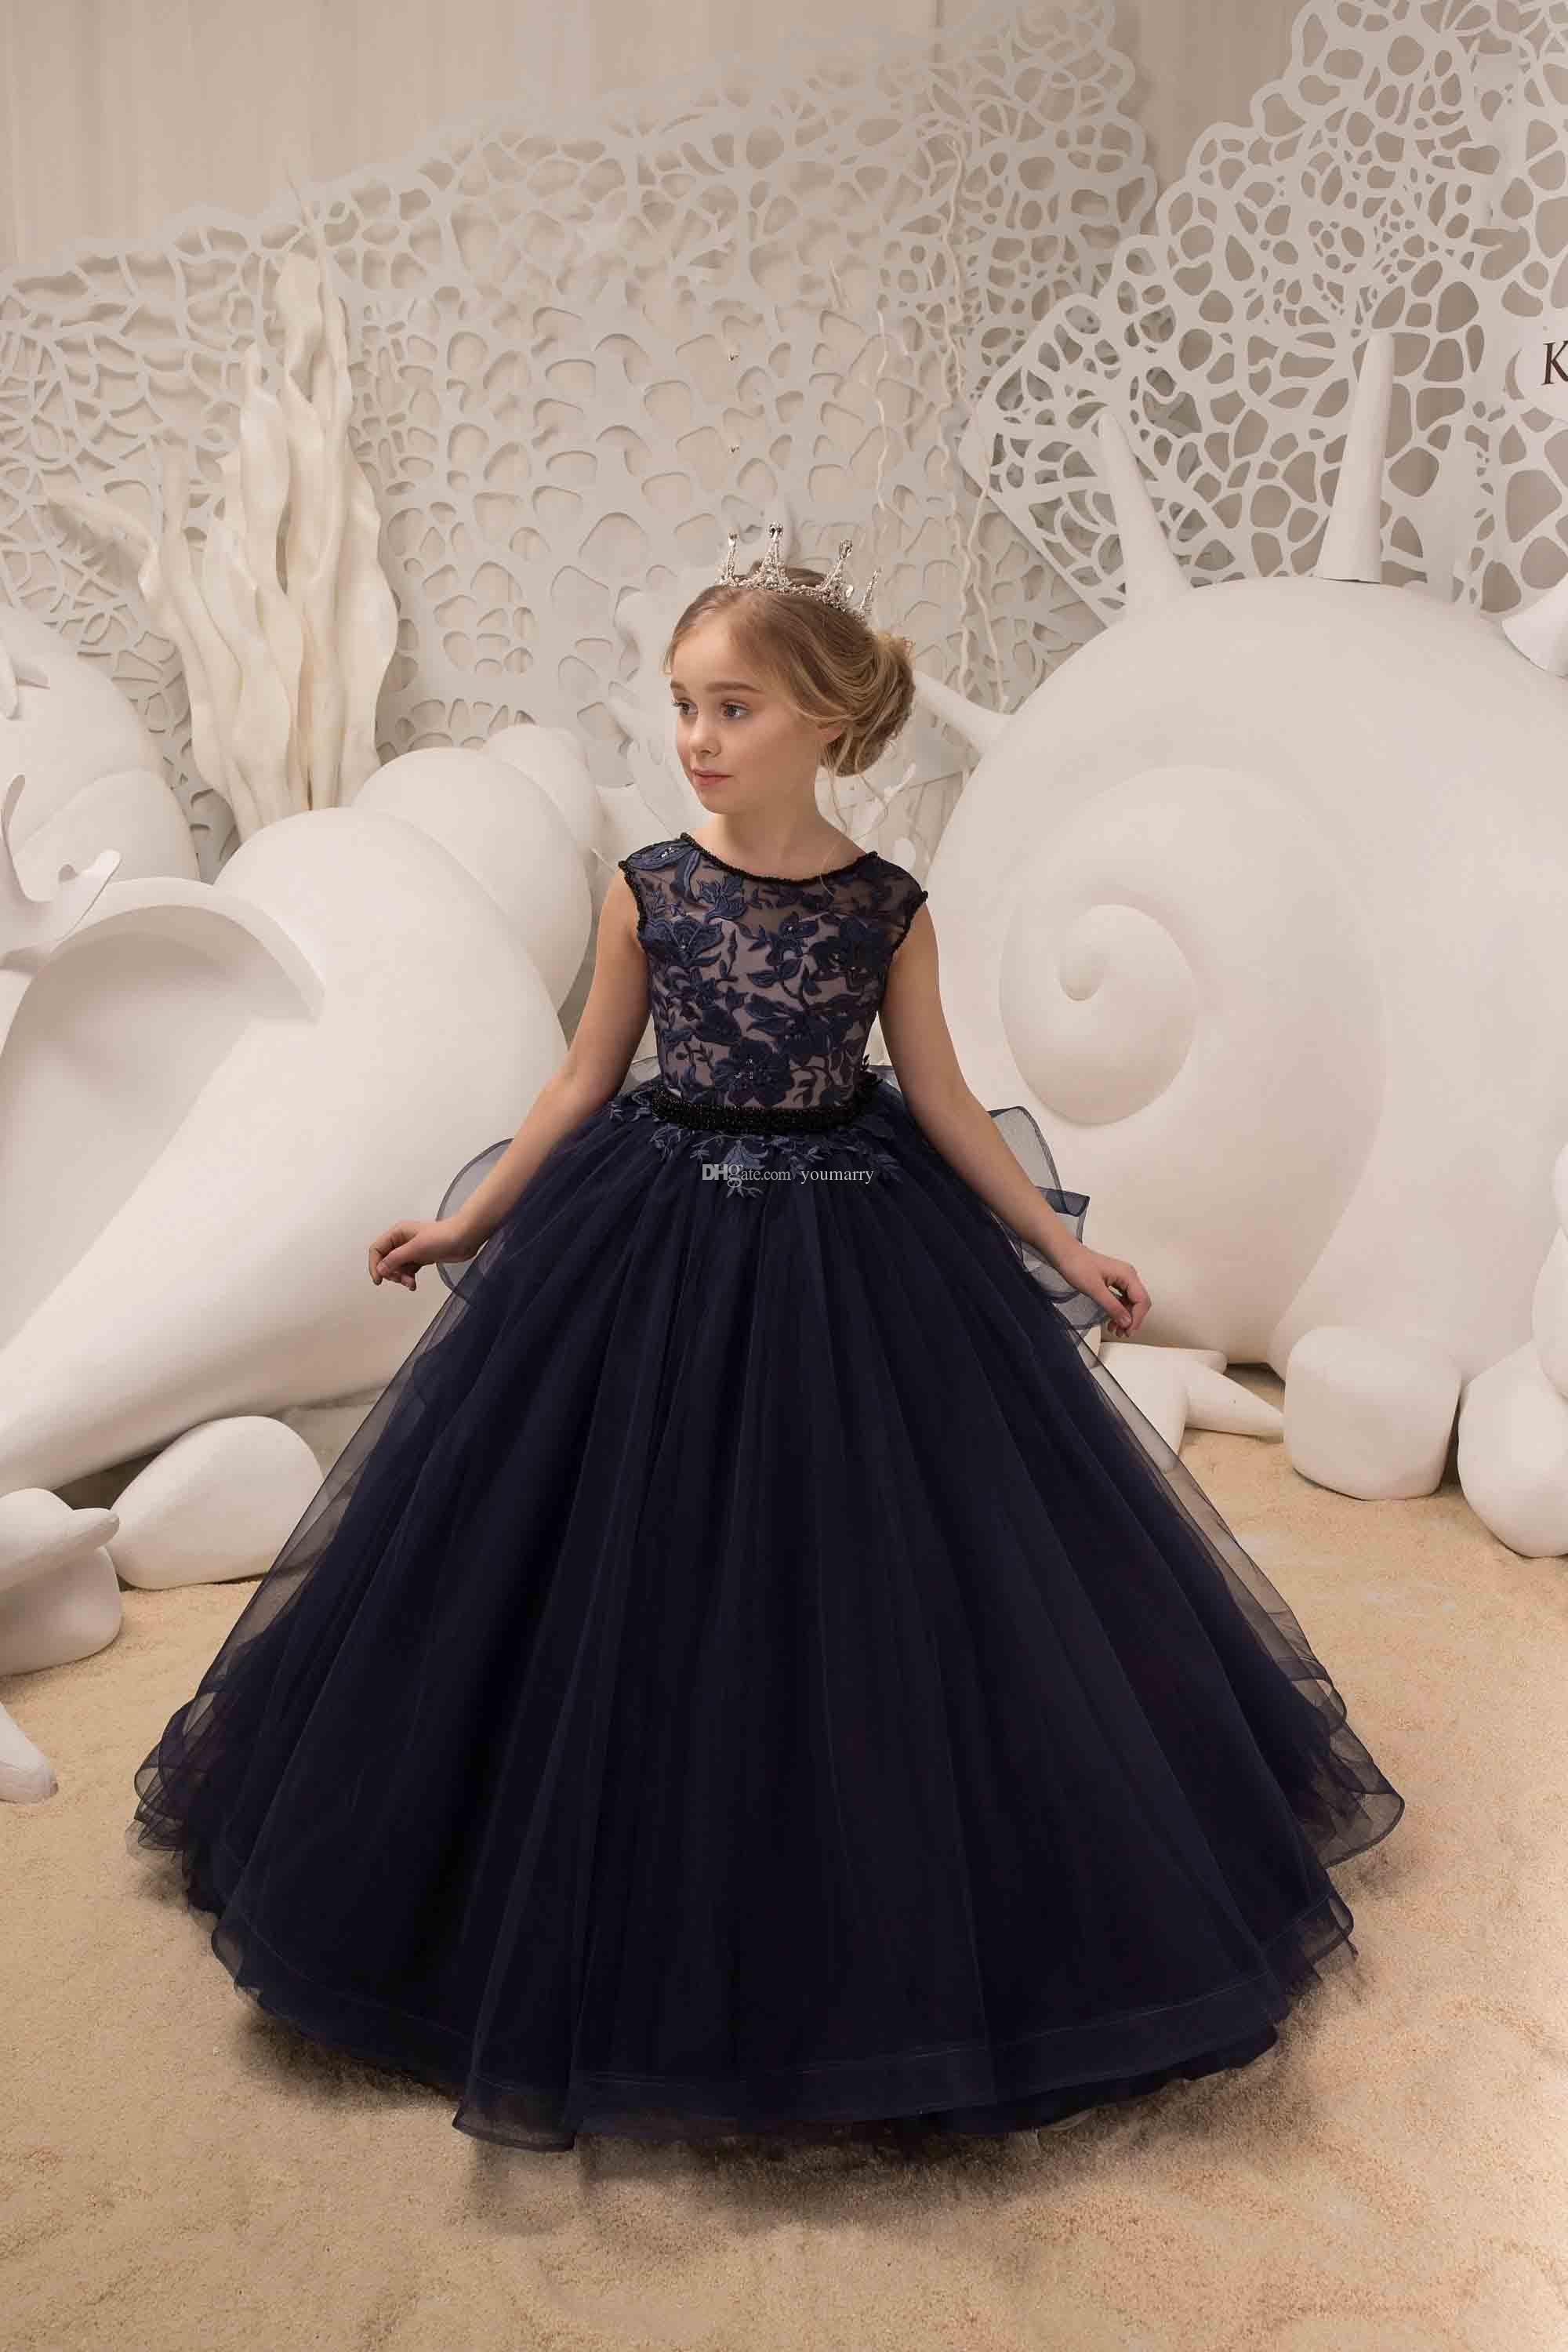 c8848a6a0659 2019 Cute Mermaid Girls Pageant Gowns Lace Applique Sleeveless Cheap Flower  Girls Dresses Children Organza Kids Birthday Party Dress Infant Dress  Ladies ...